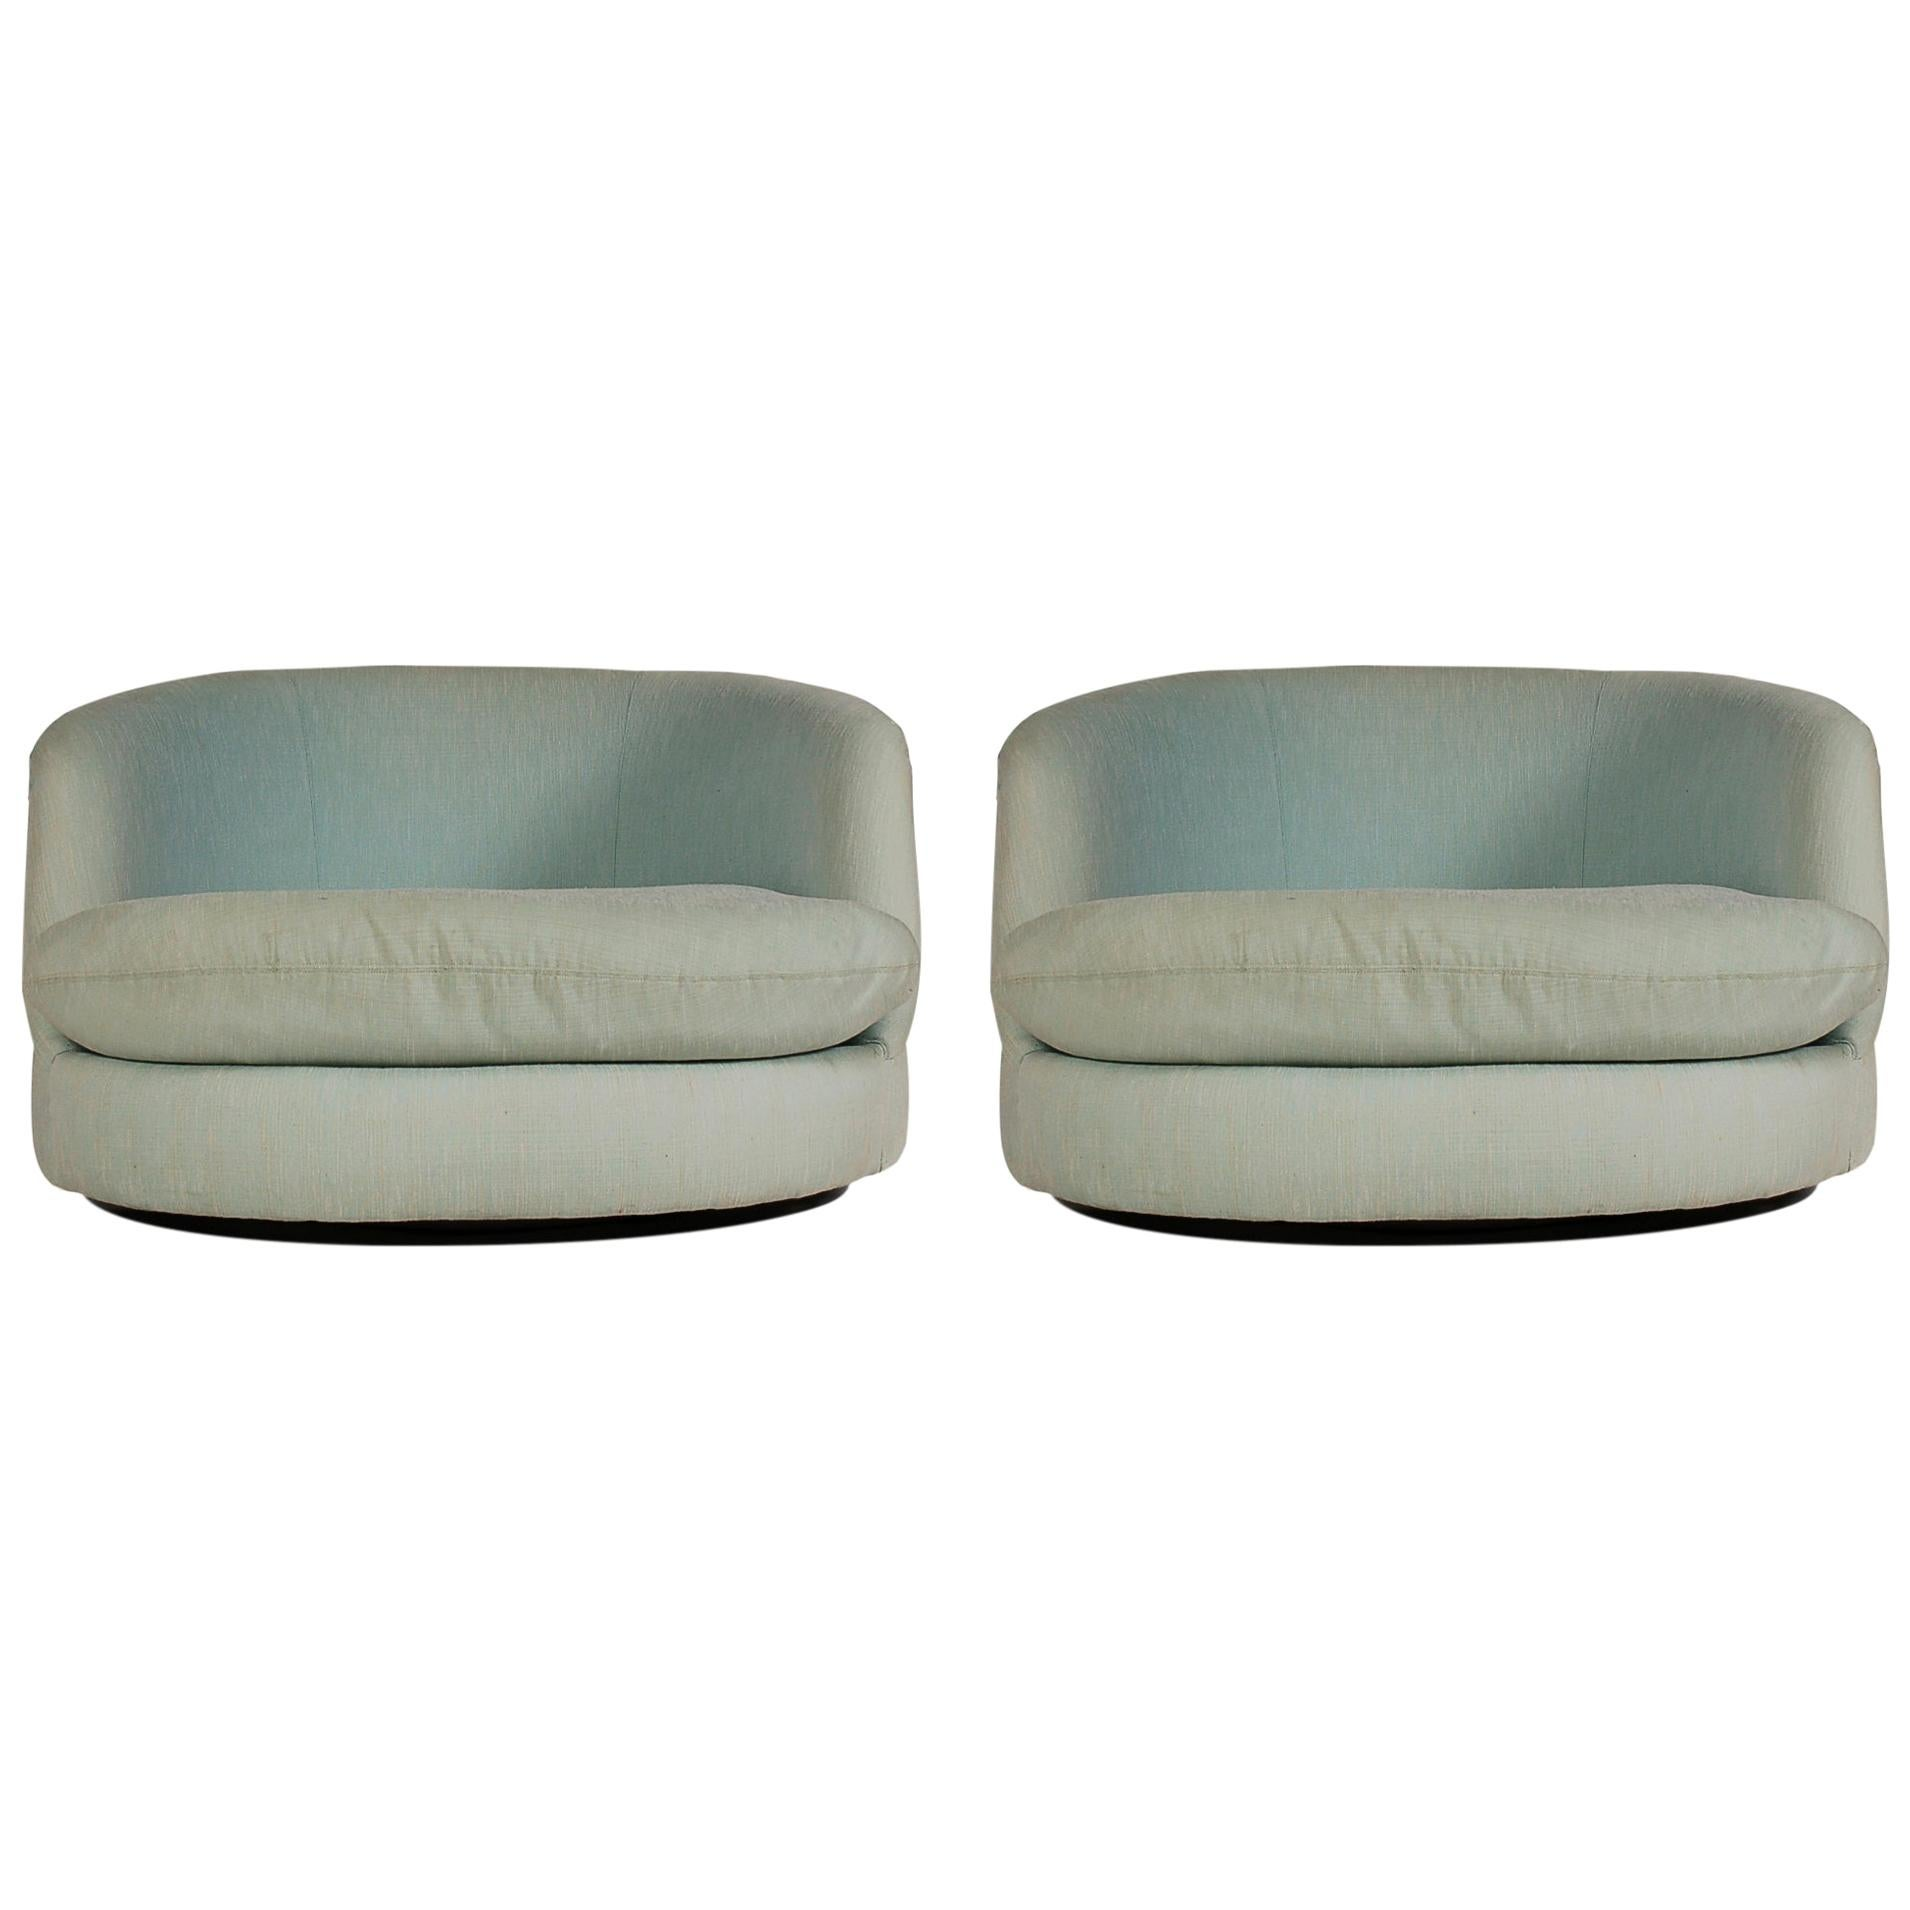 Mid-Century Modern Oversized Swivel Chaise Lounge Tub Chairs by Milo Baughman